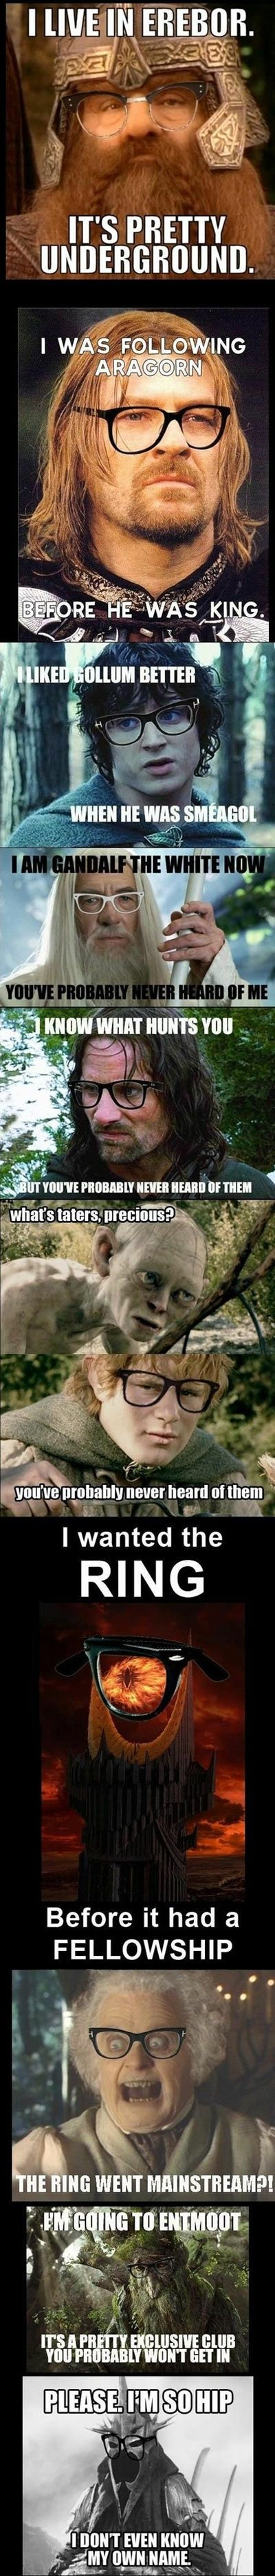 Hipster Lord Of The Rings. This shouldn't be as funny as I think it is